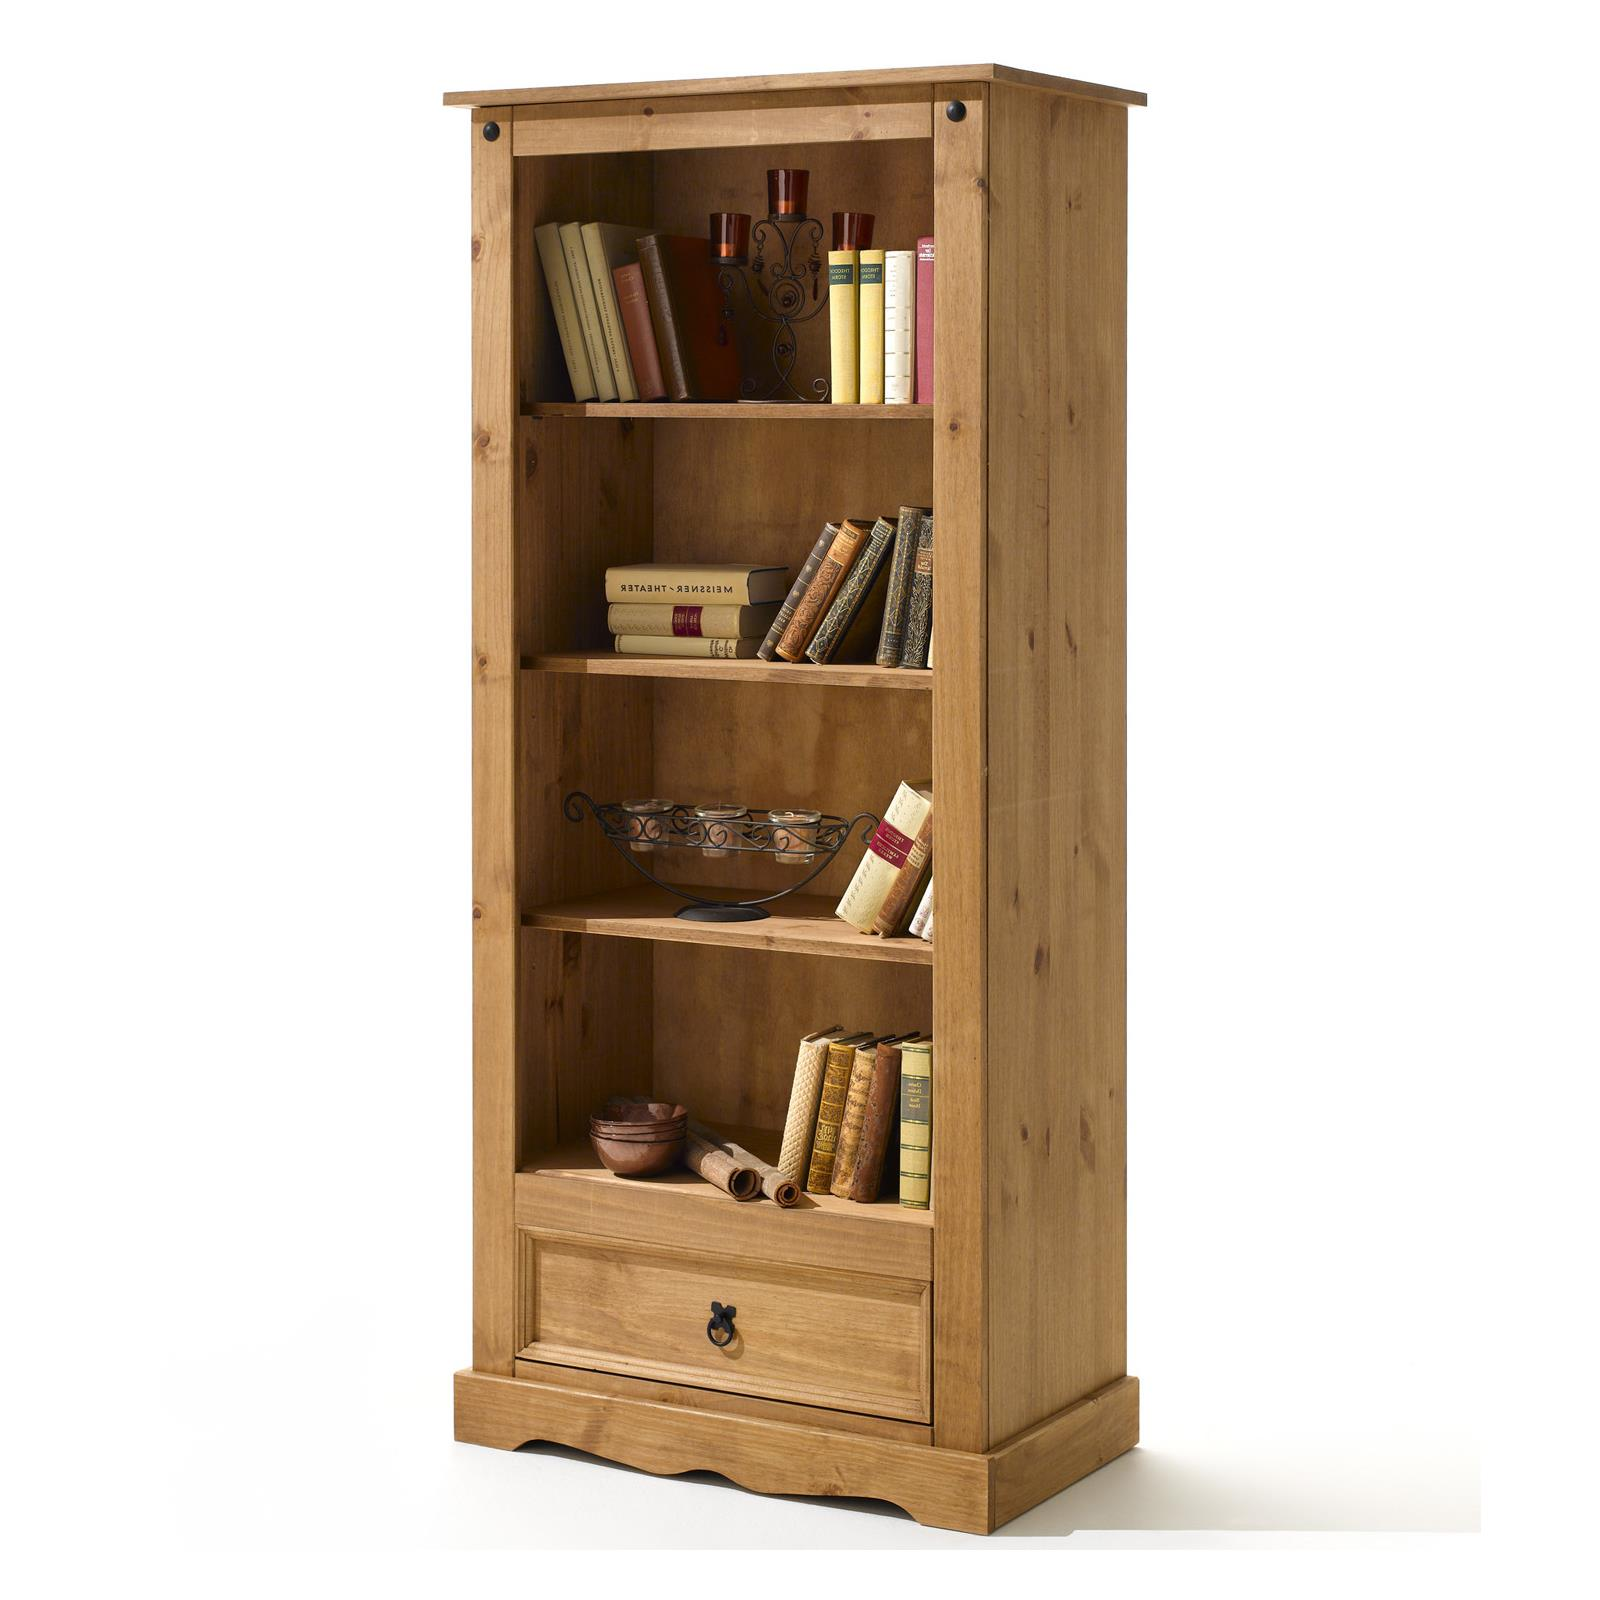 D coration meuble bibliotheque en pin 28 calais for Bibliotheque meuble conforama